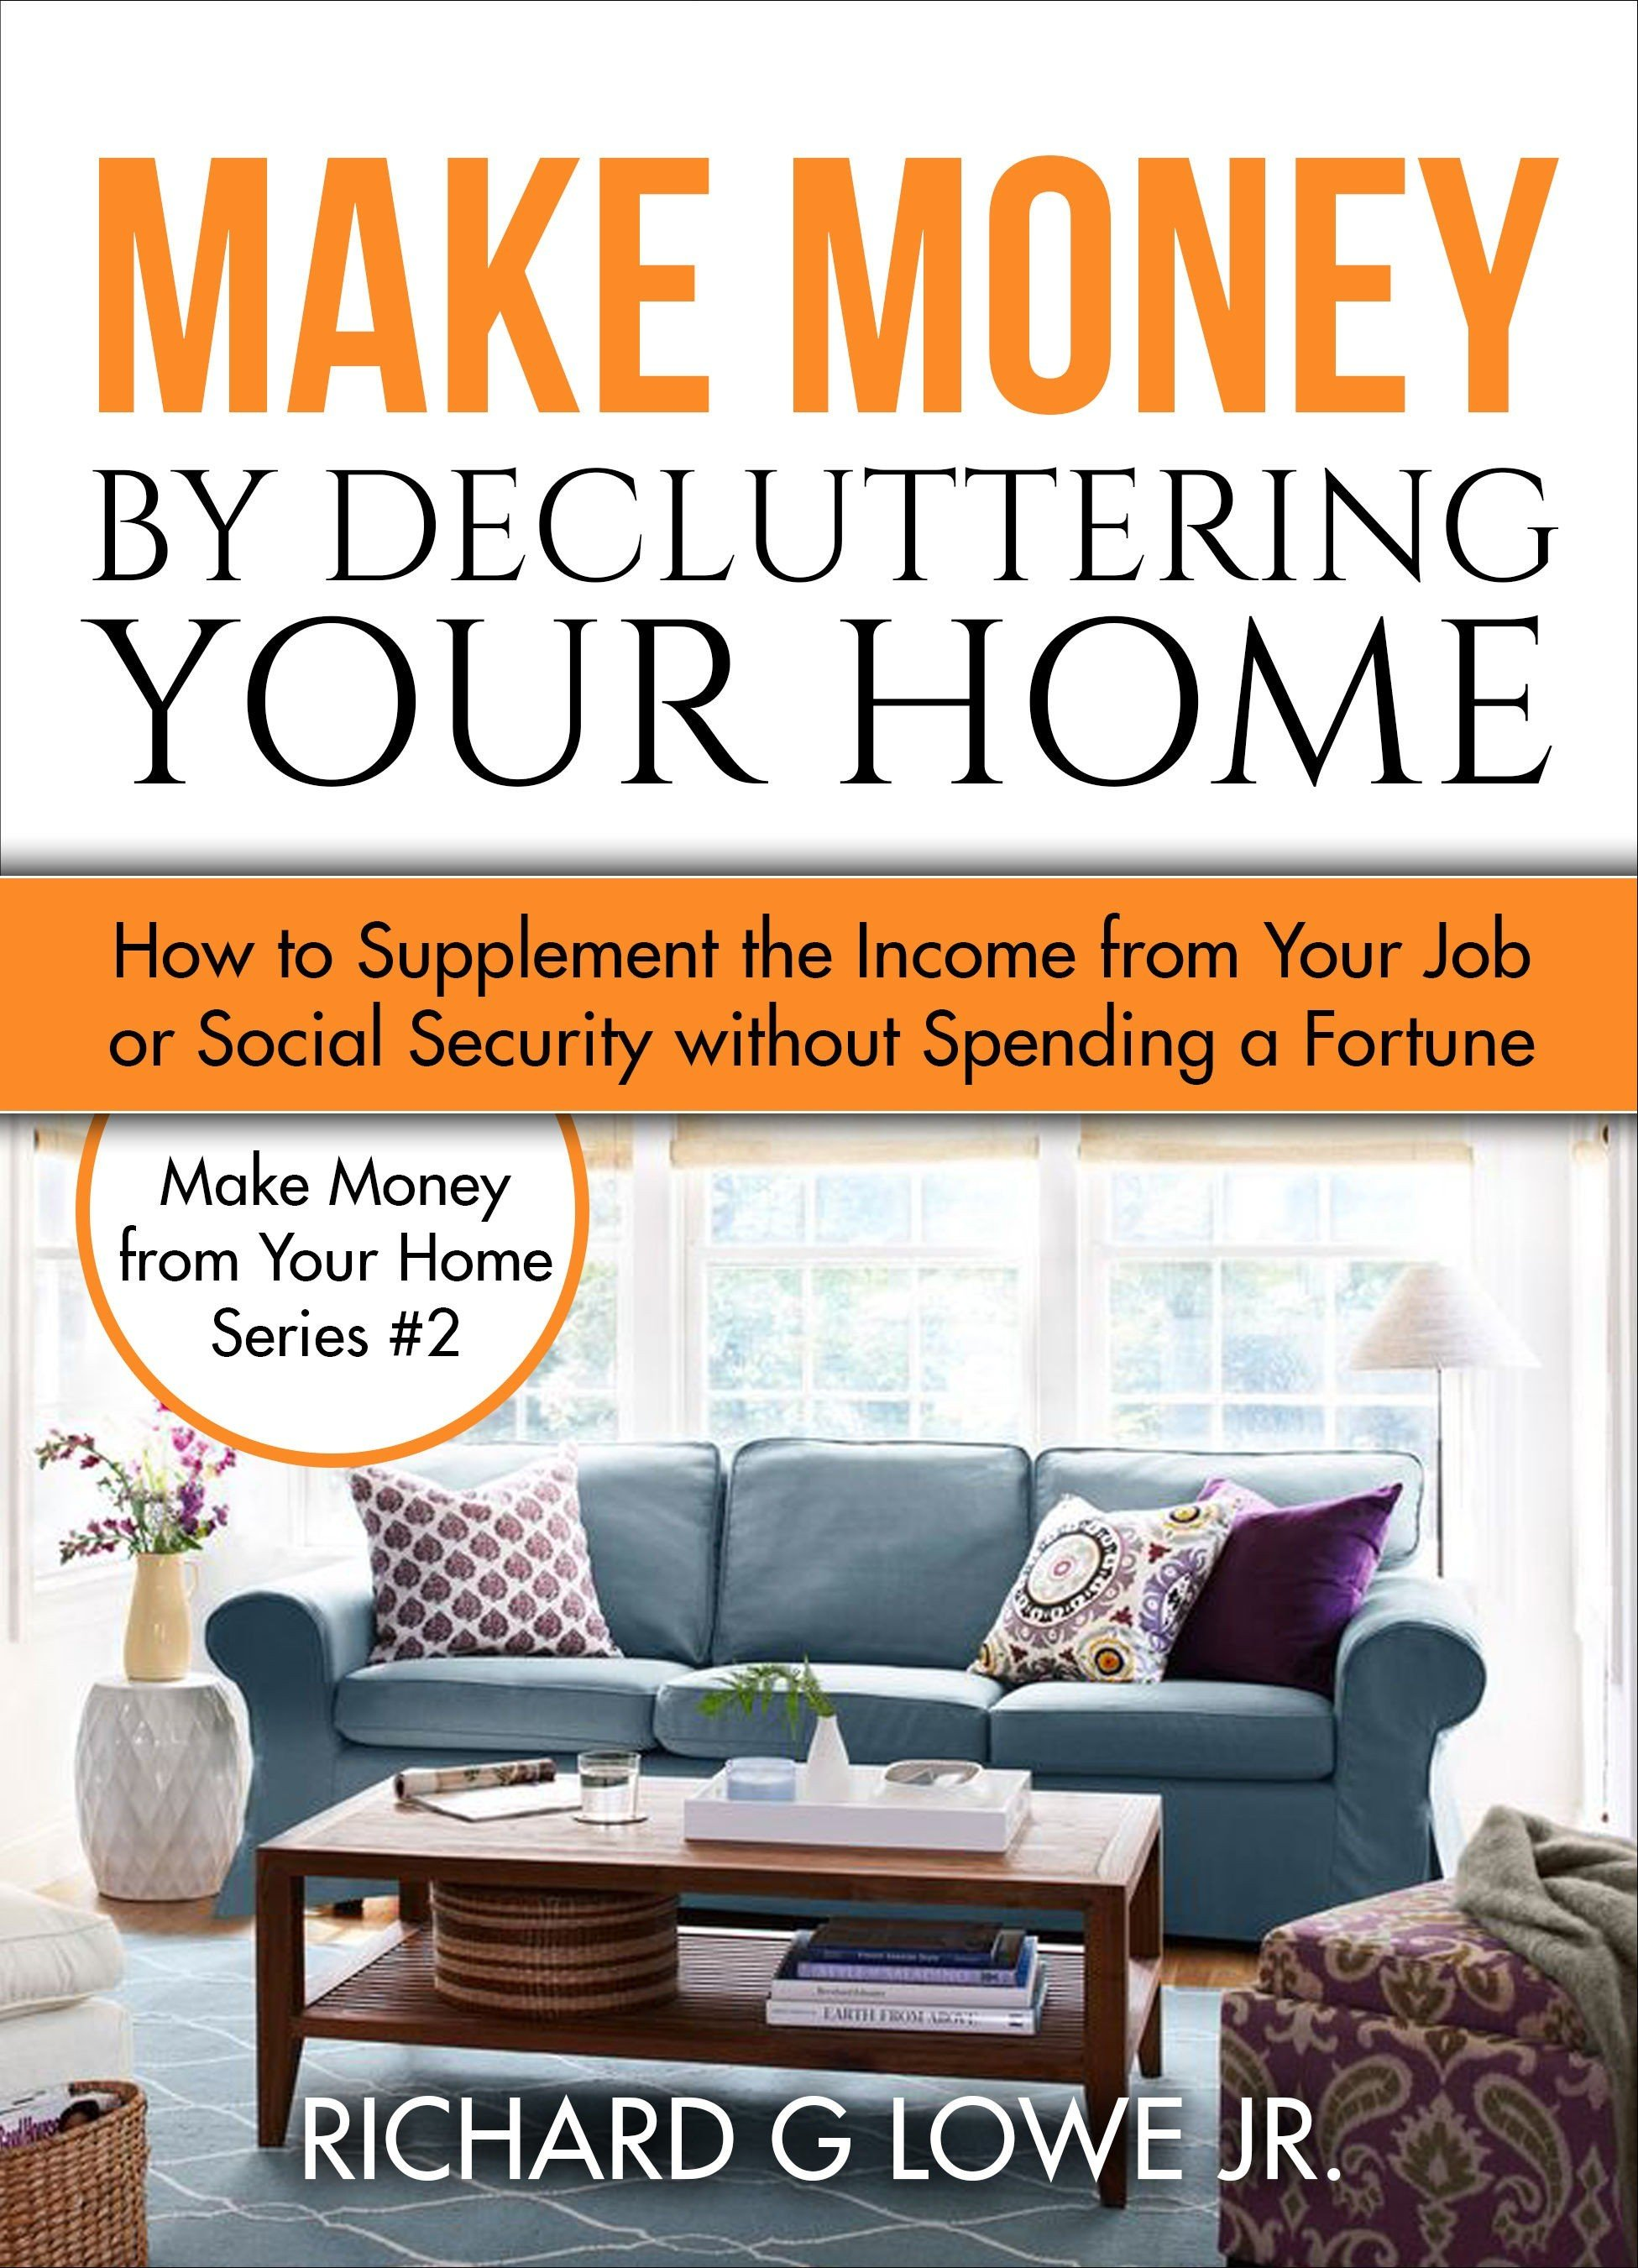 Make Money by Decluttering Your Home The Writing King